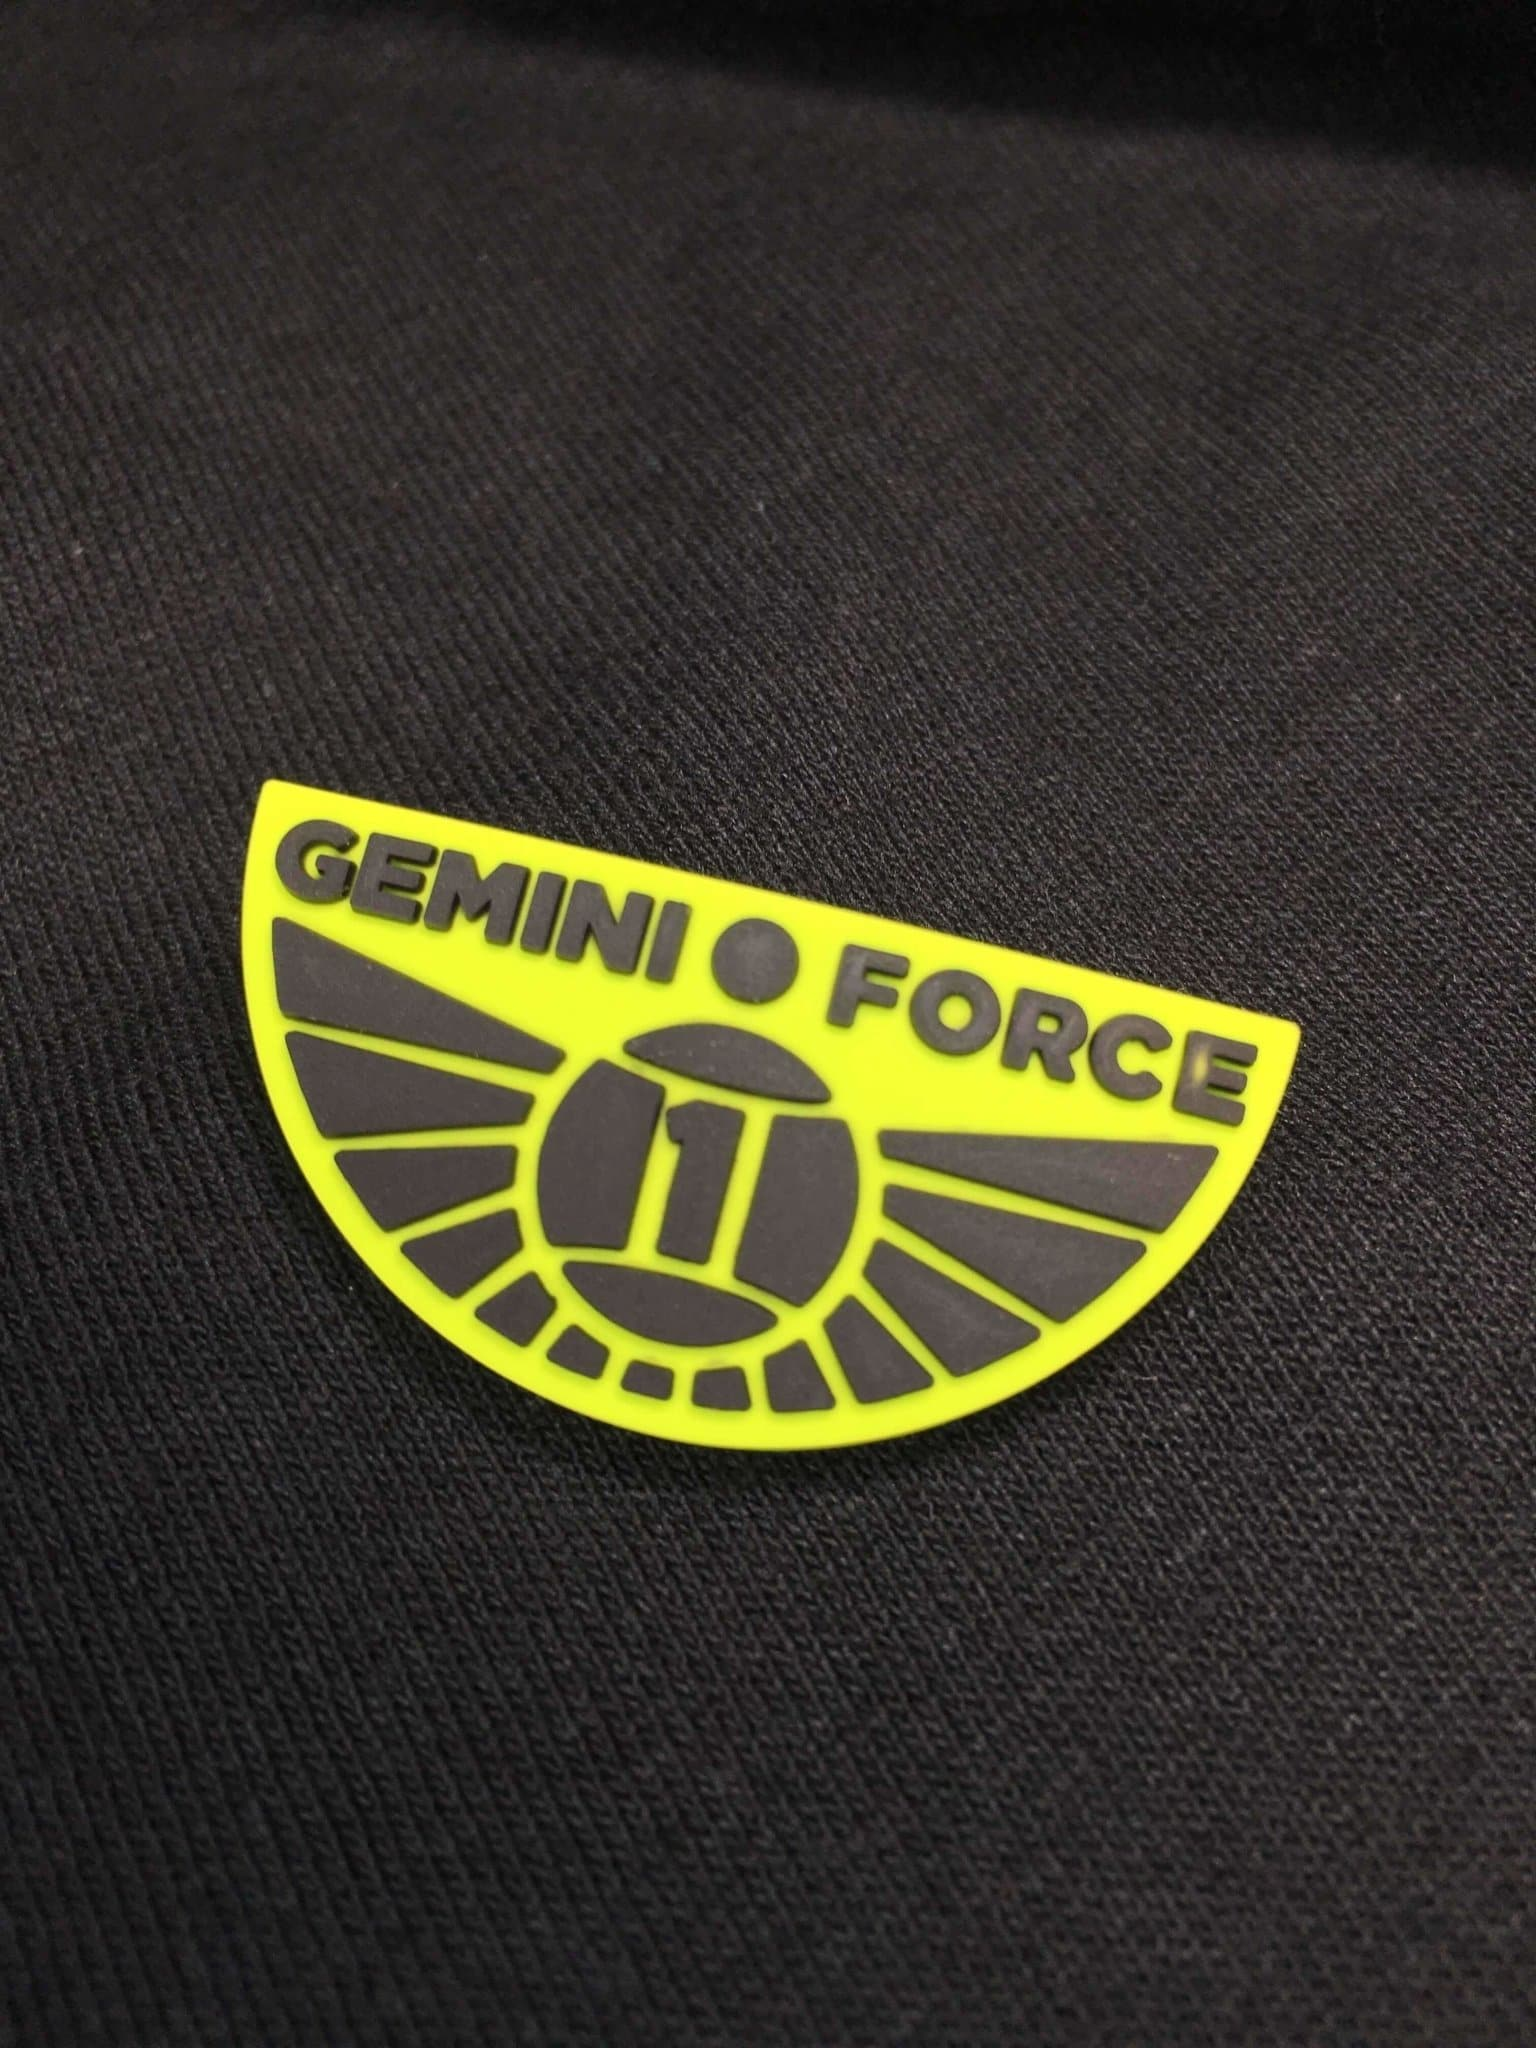 Gemini Force One Rubber Pin Badge - The Gerry Anderson Store